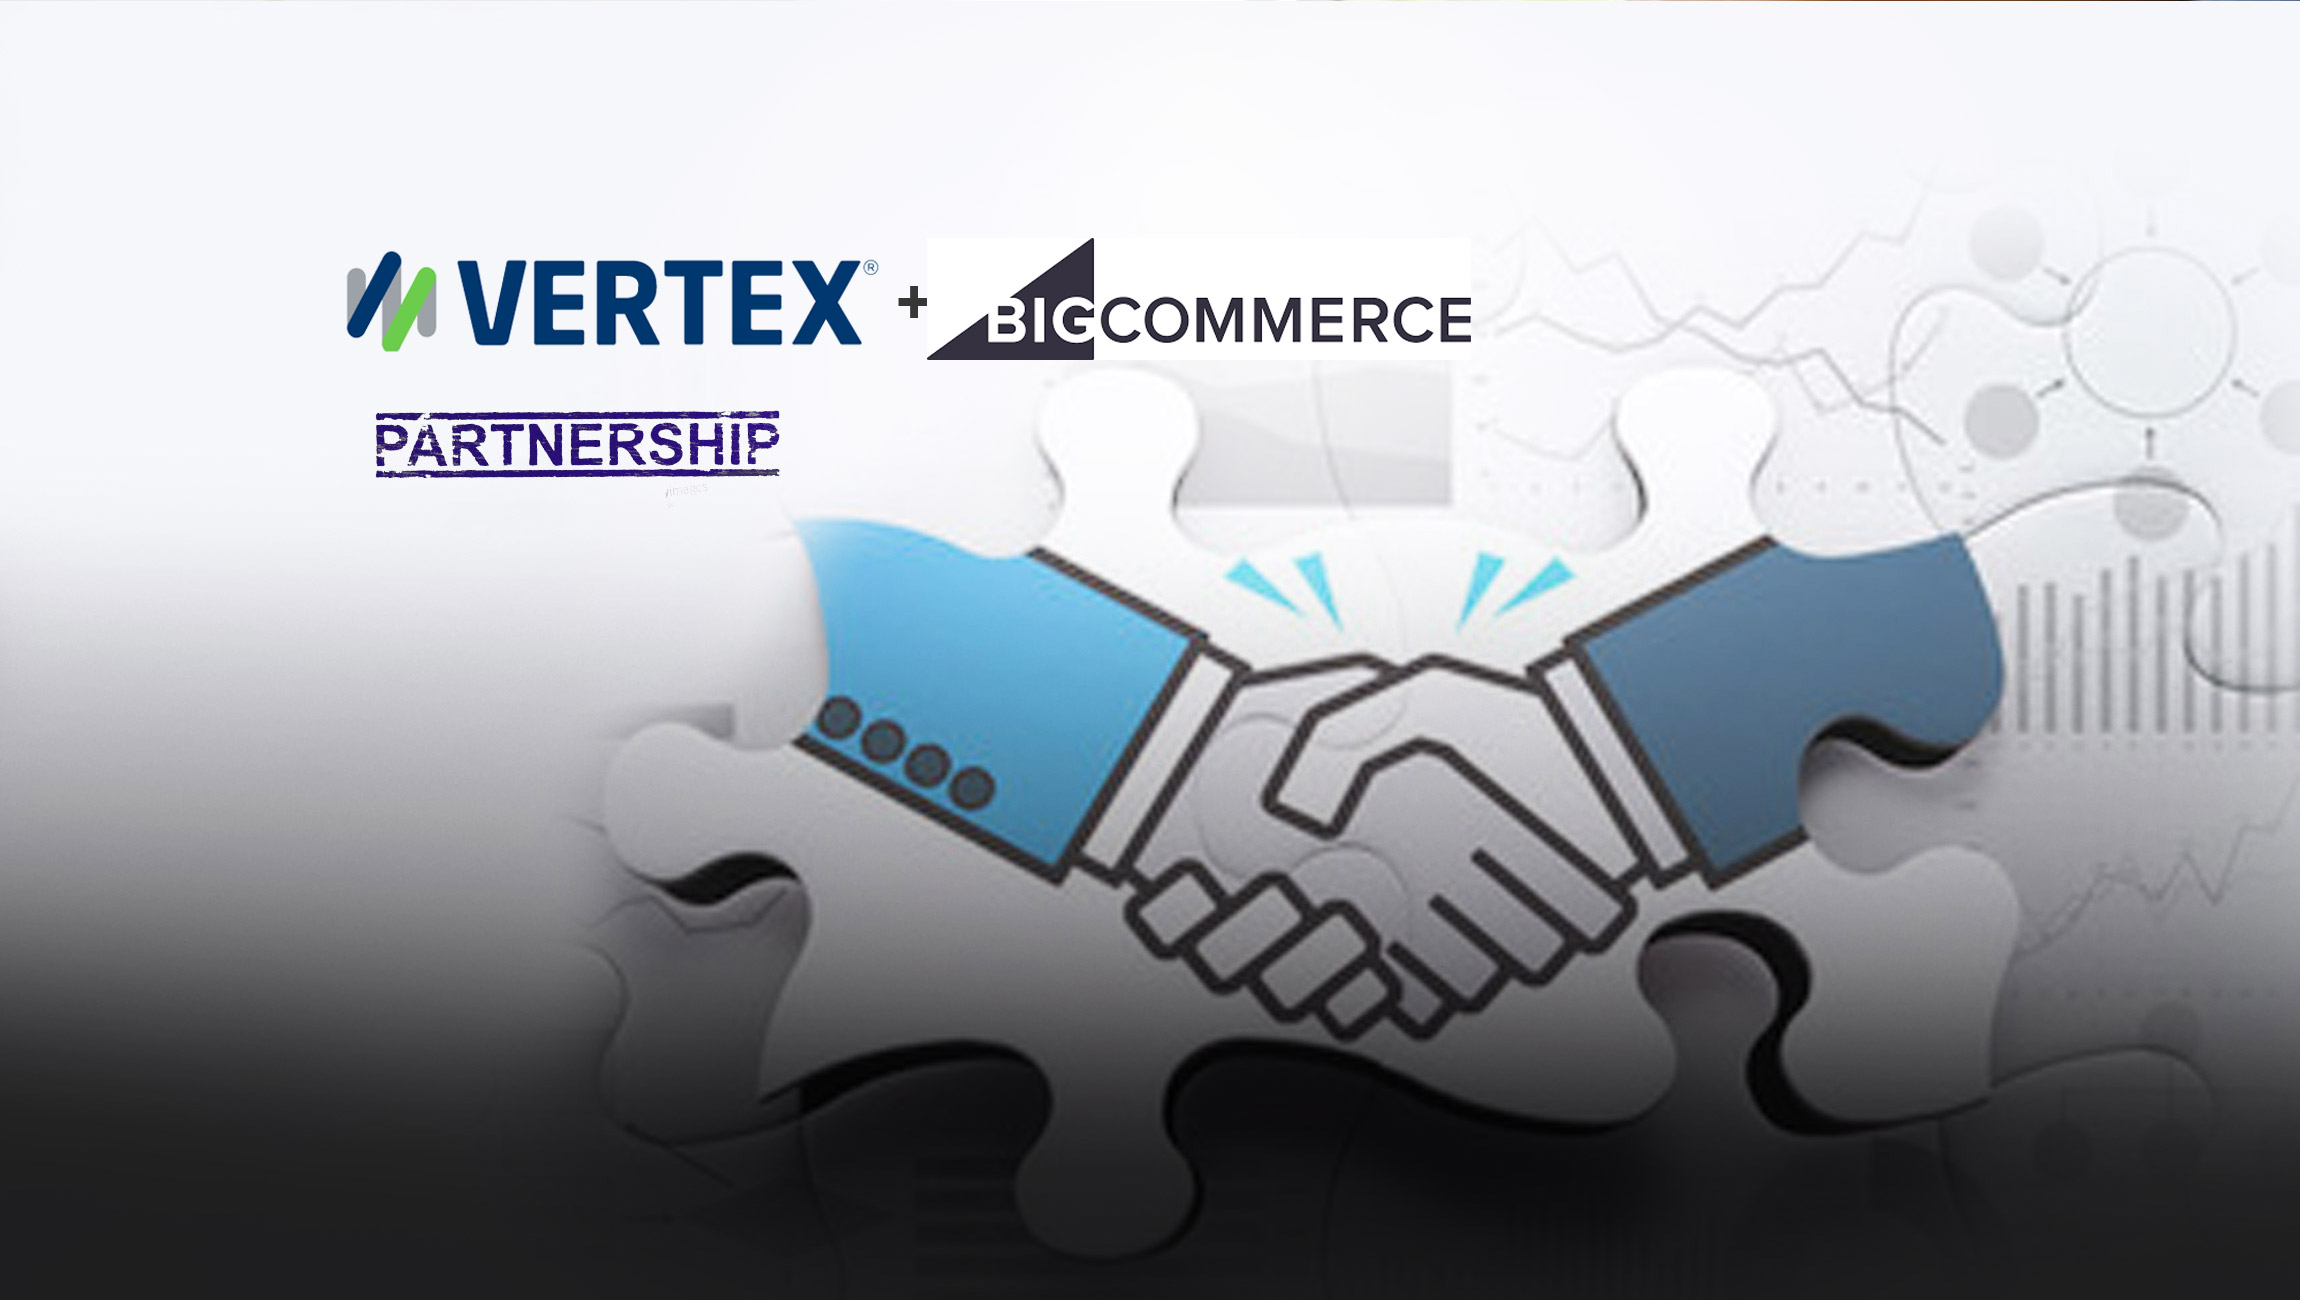 Vertex Announces Partnership with BigCommerce to Deliver Streamlined Sales Tax Compliance Solution to Retailers